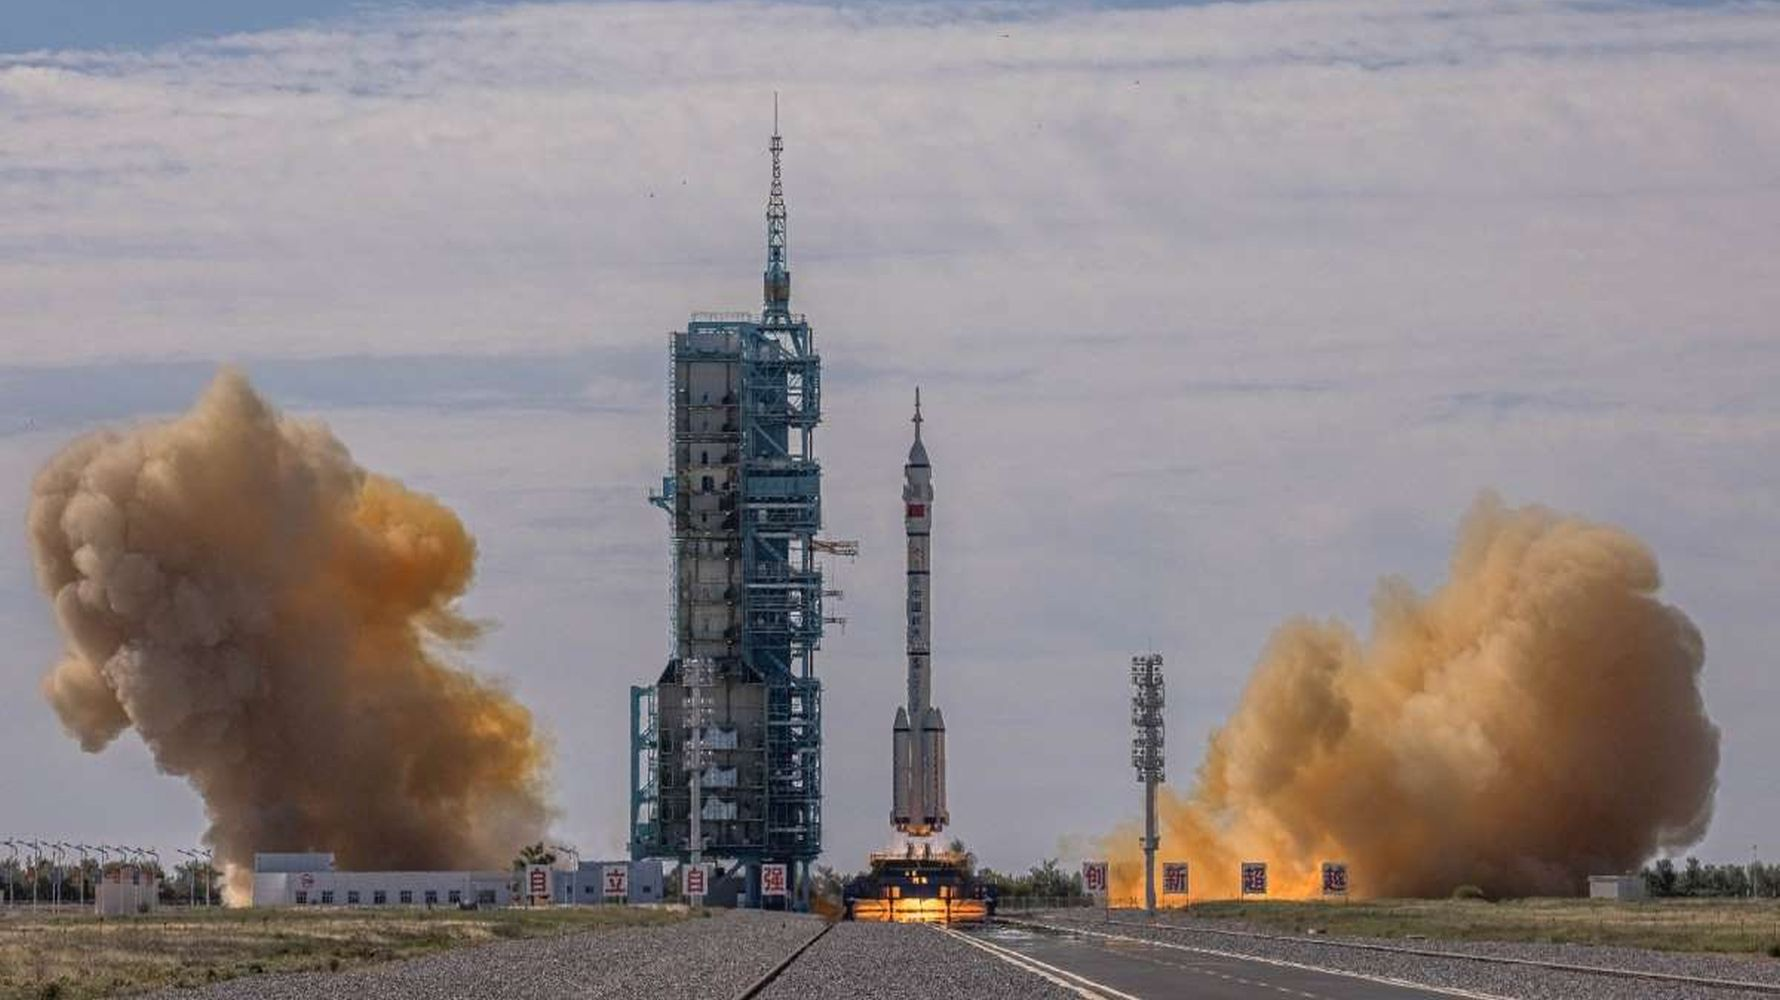 genie invites foreign astronauts to joint space journey